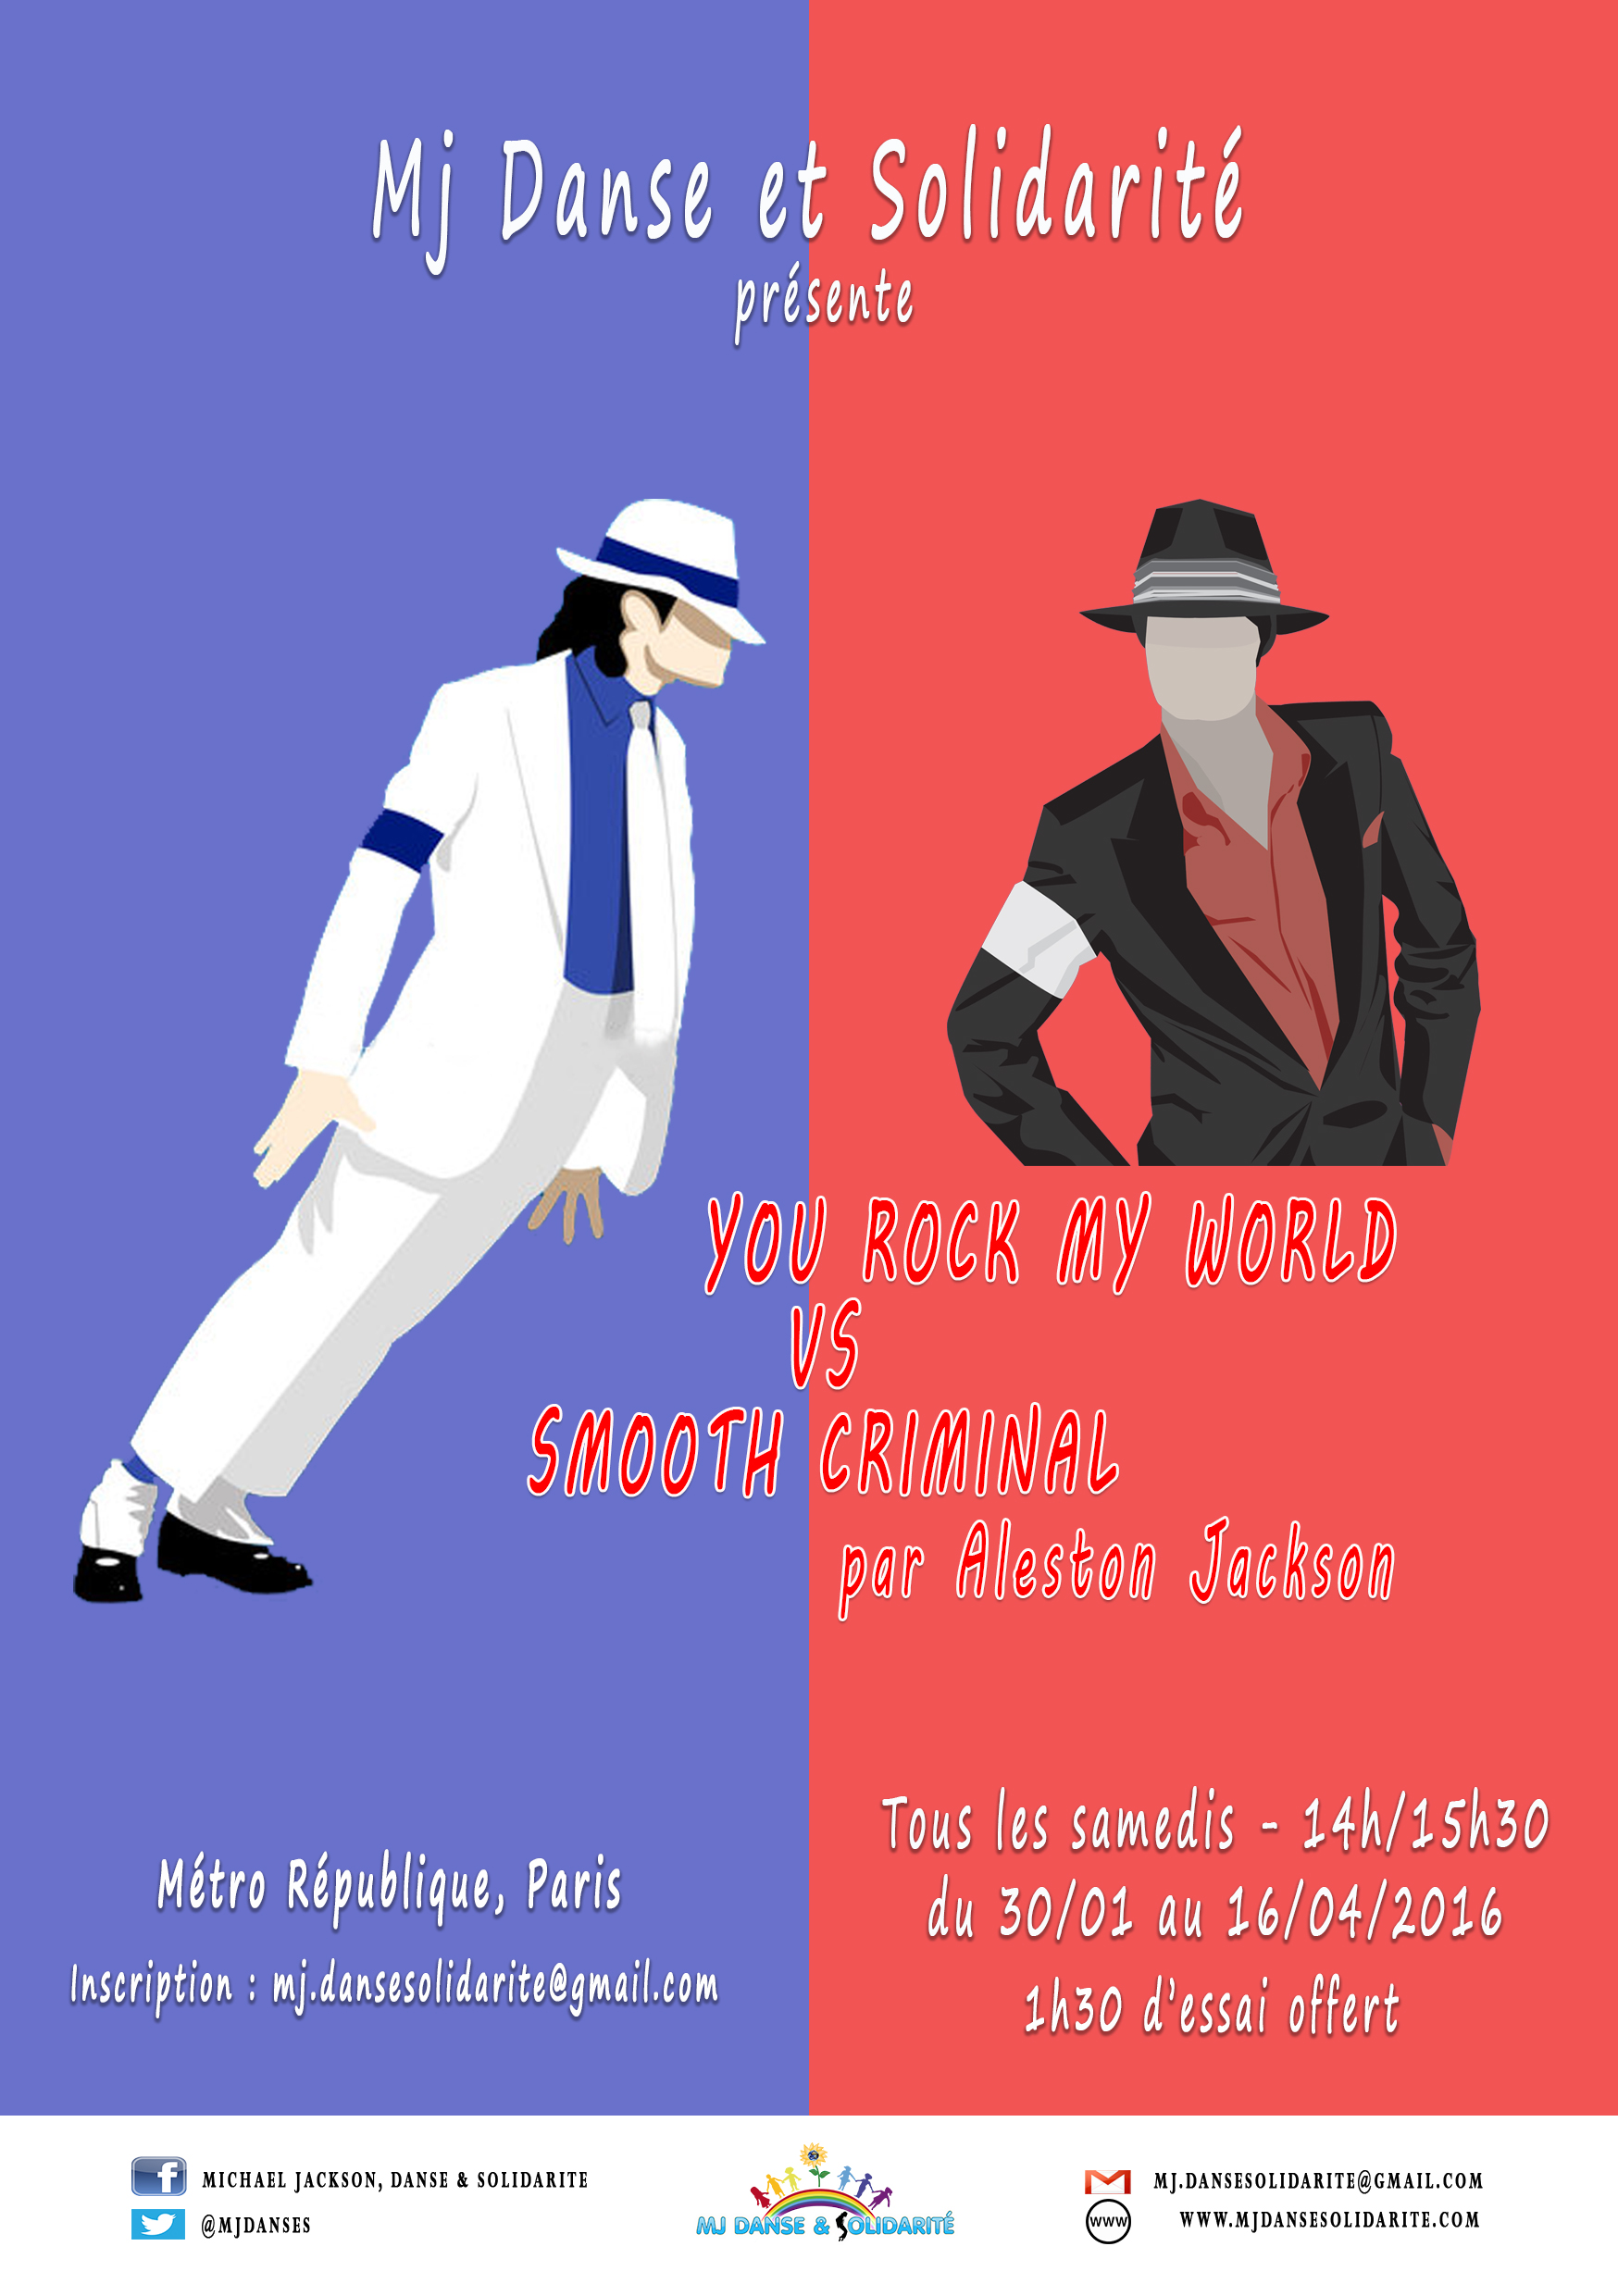 Smooth criminal VS You rock my world